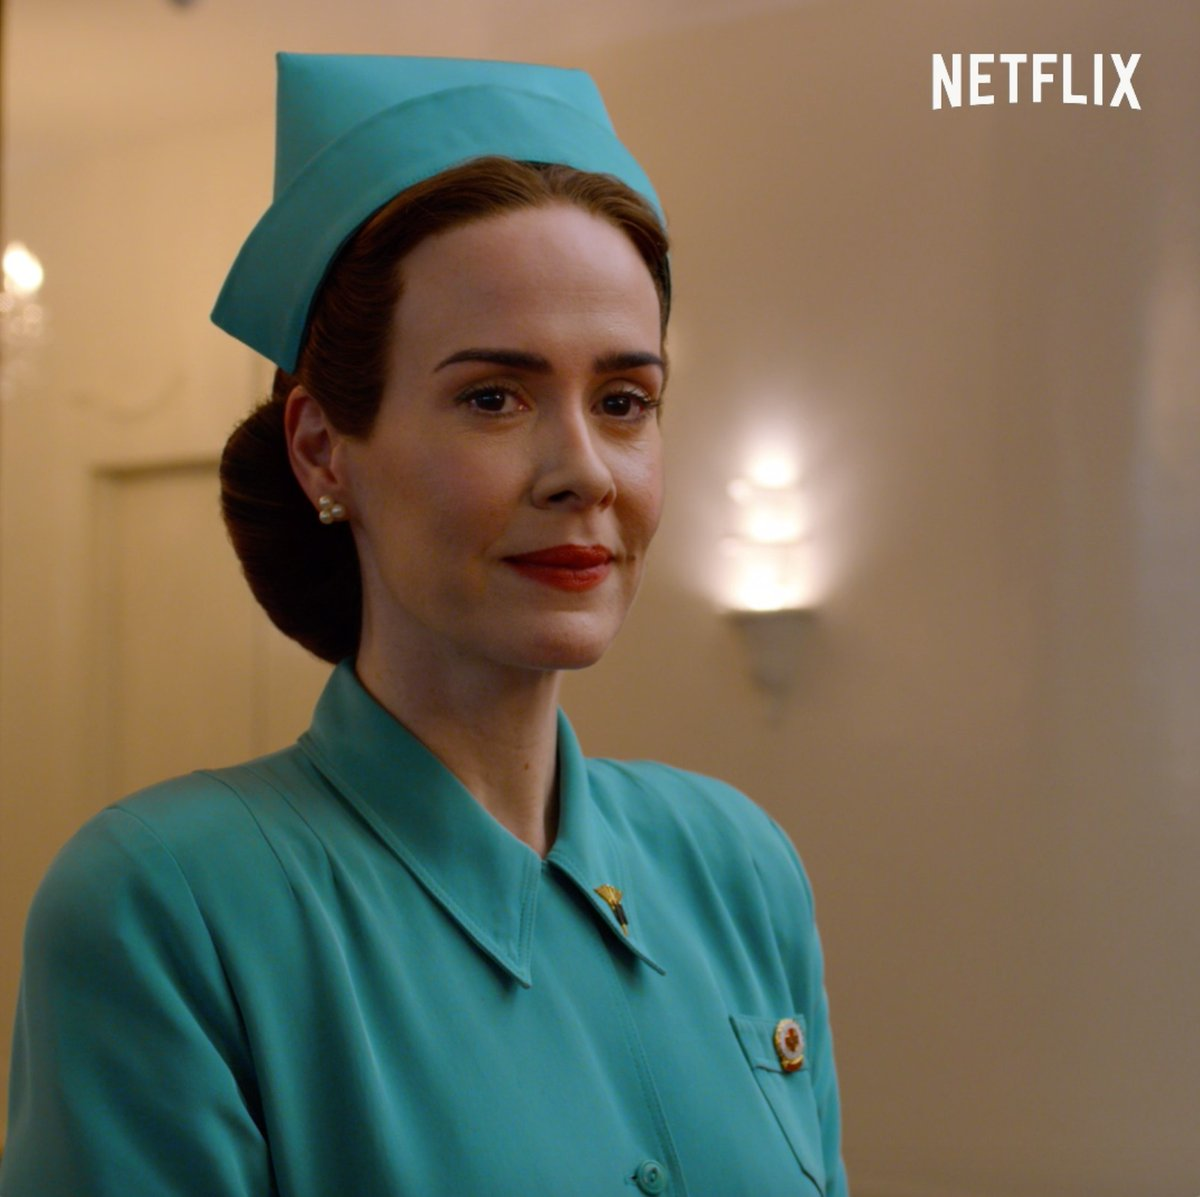 Sarah Paulson's new series Ratched premieres September 18.  We appreciate your patients.